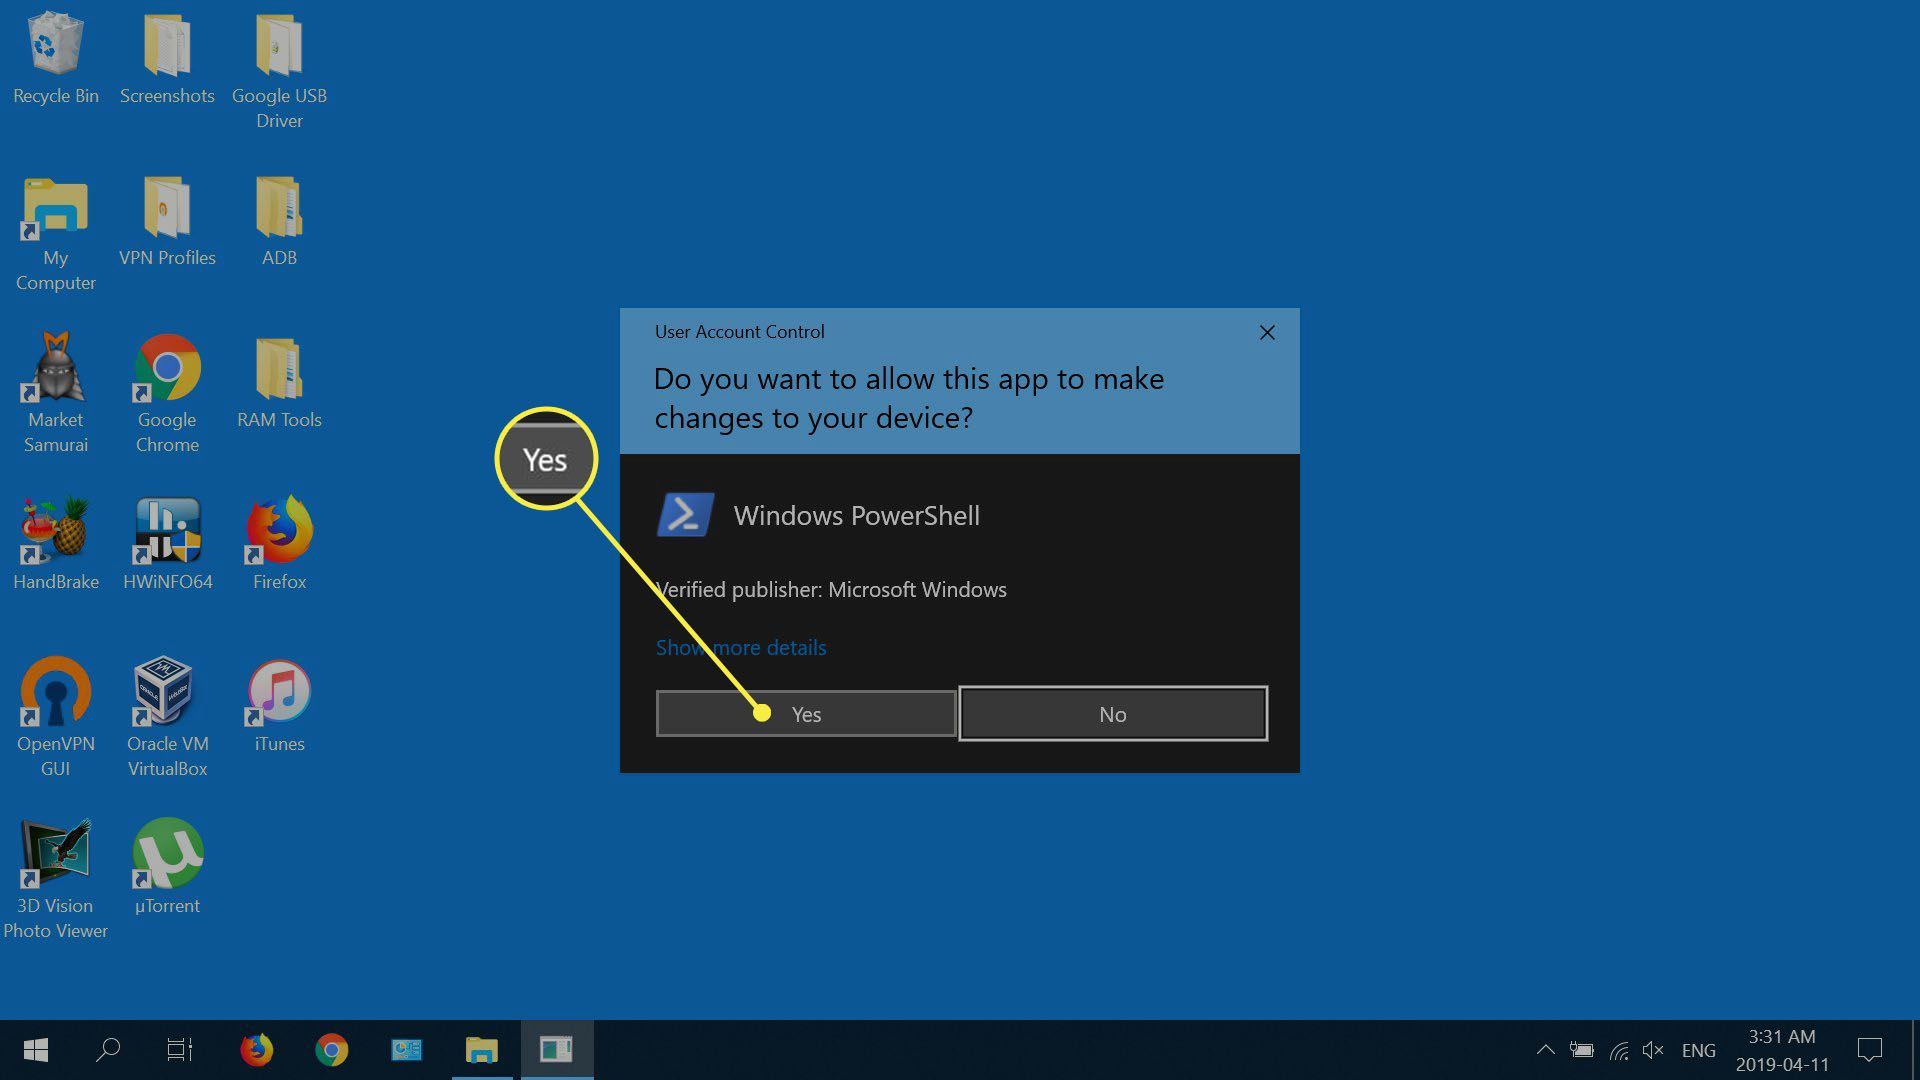 Select Yes when the UAC dialog appears.